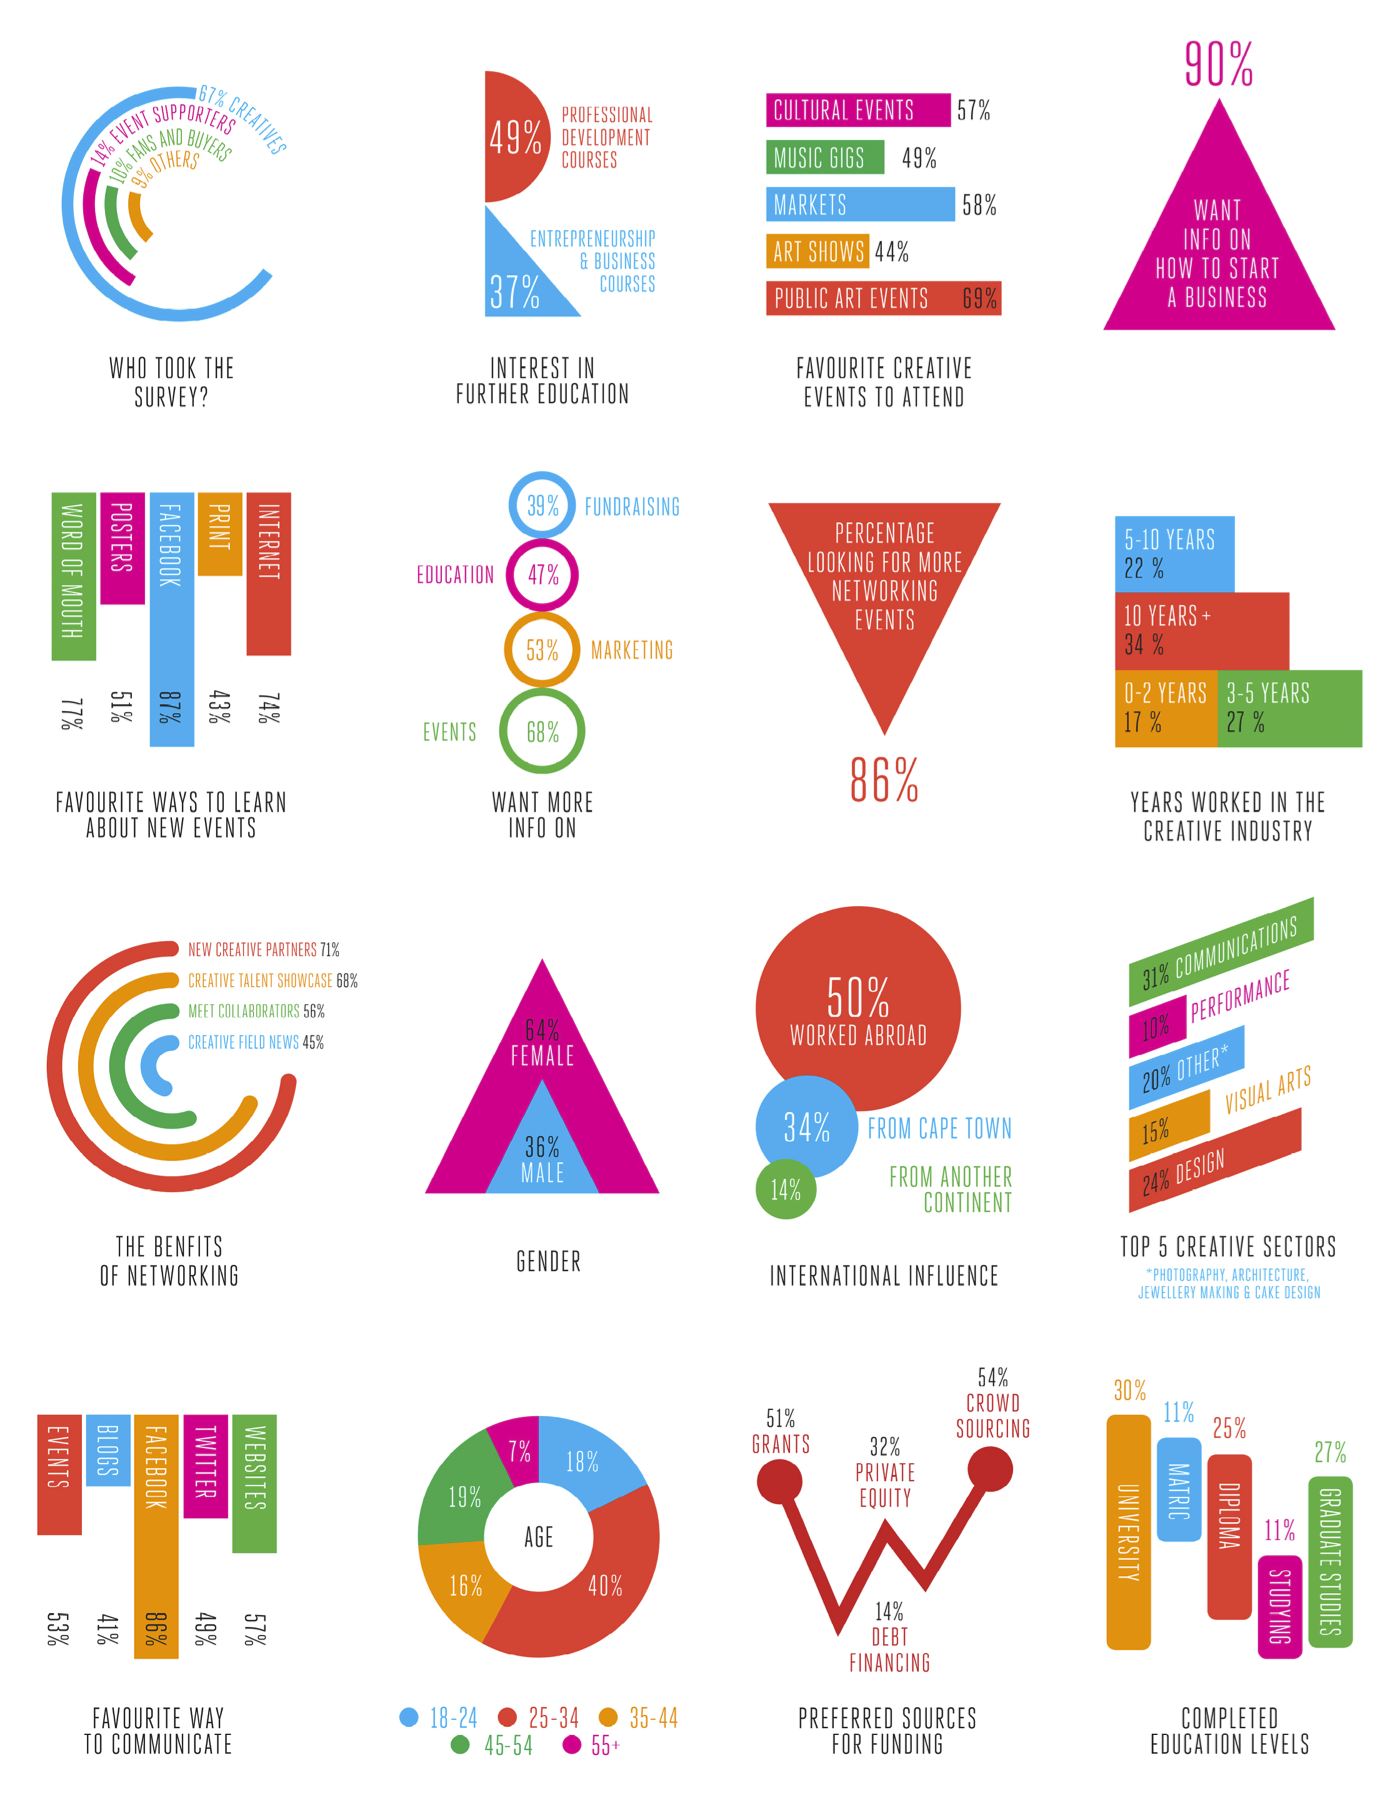 Creative-Cape-Town-Infographic-Oct-2013.png